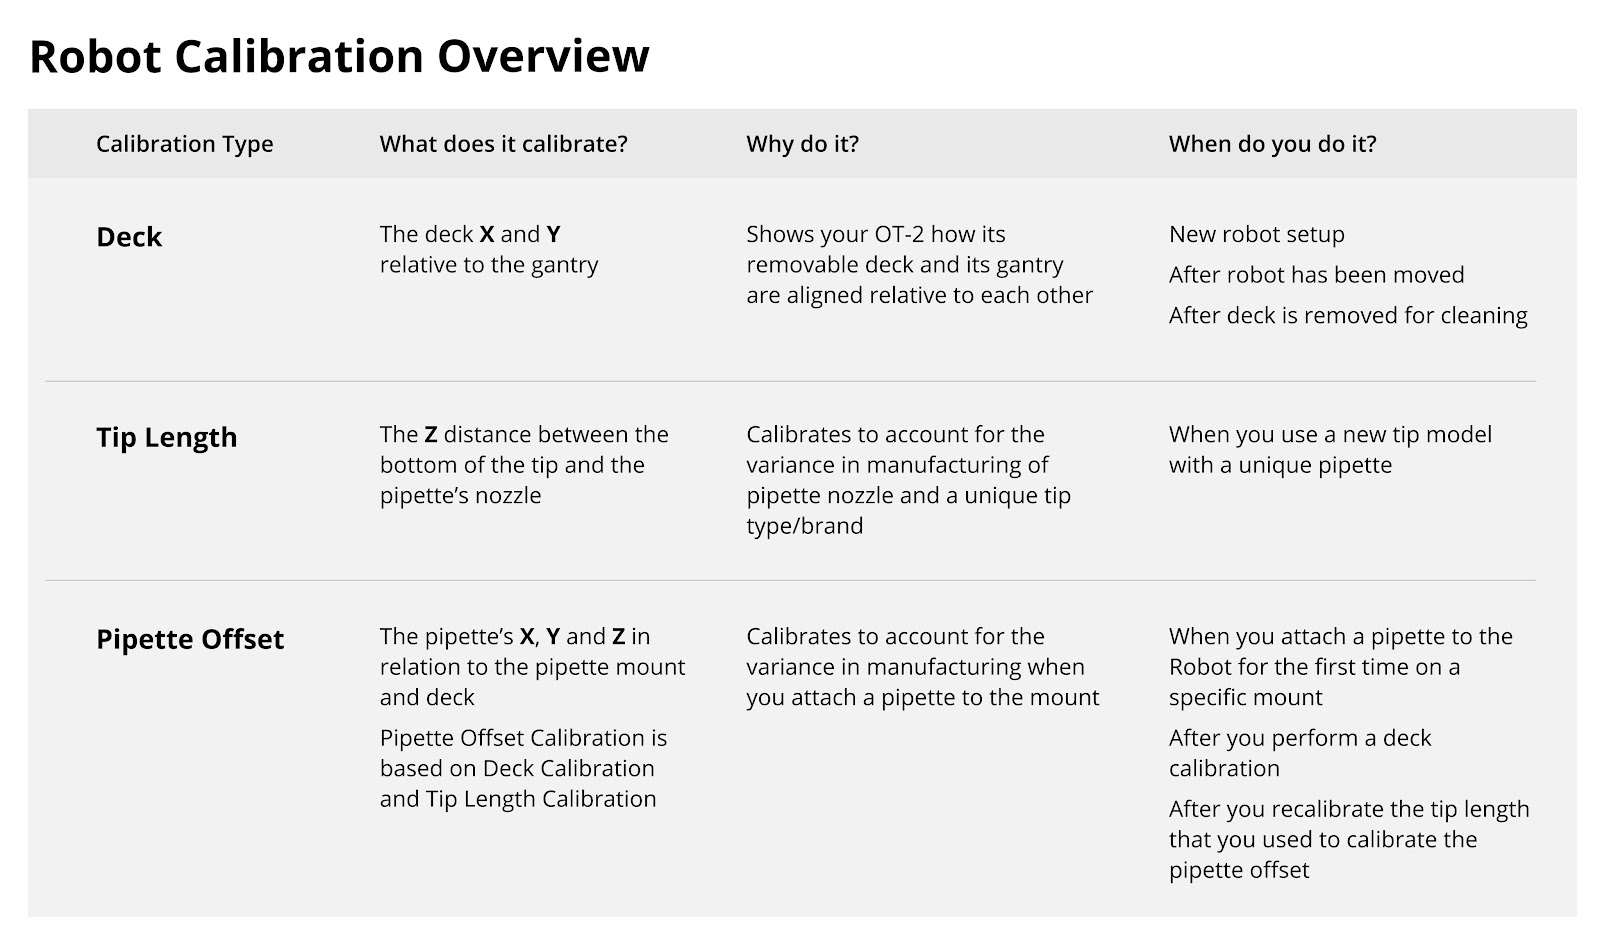 robot_calibration_overview.png